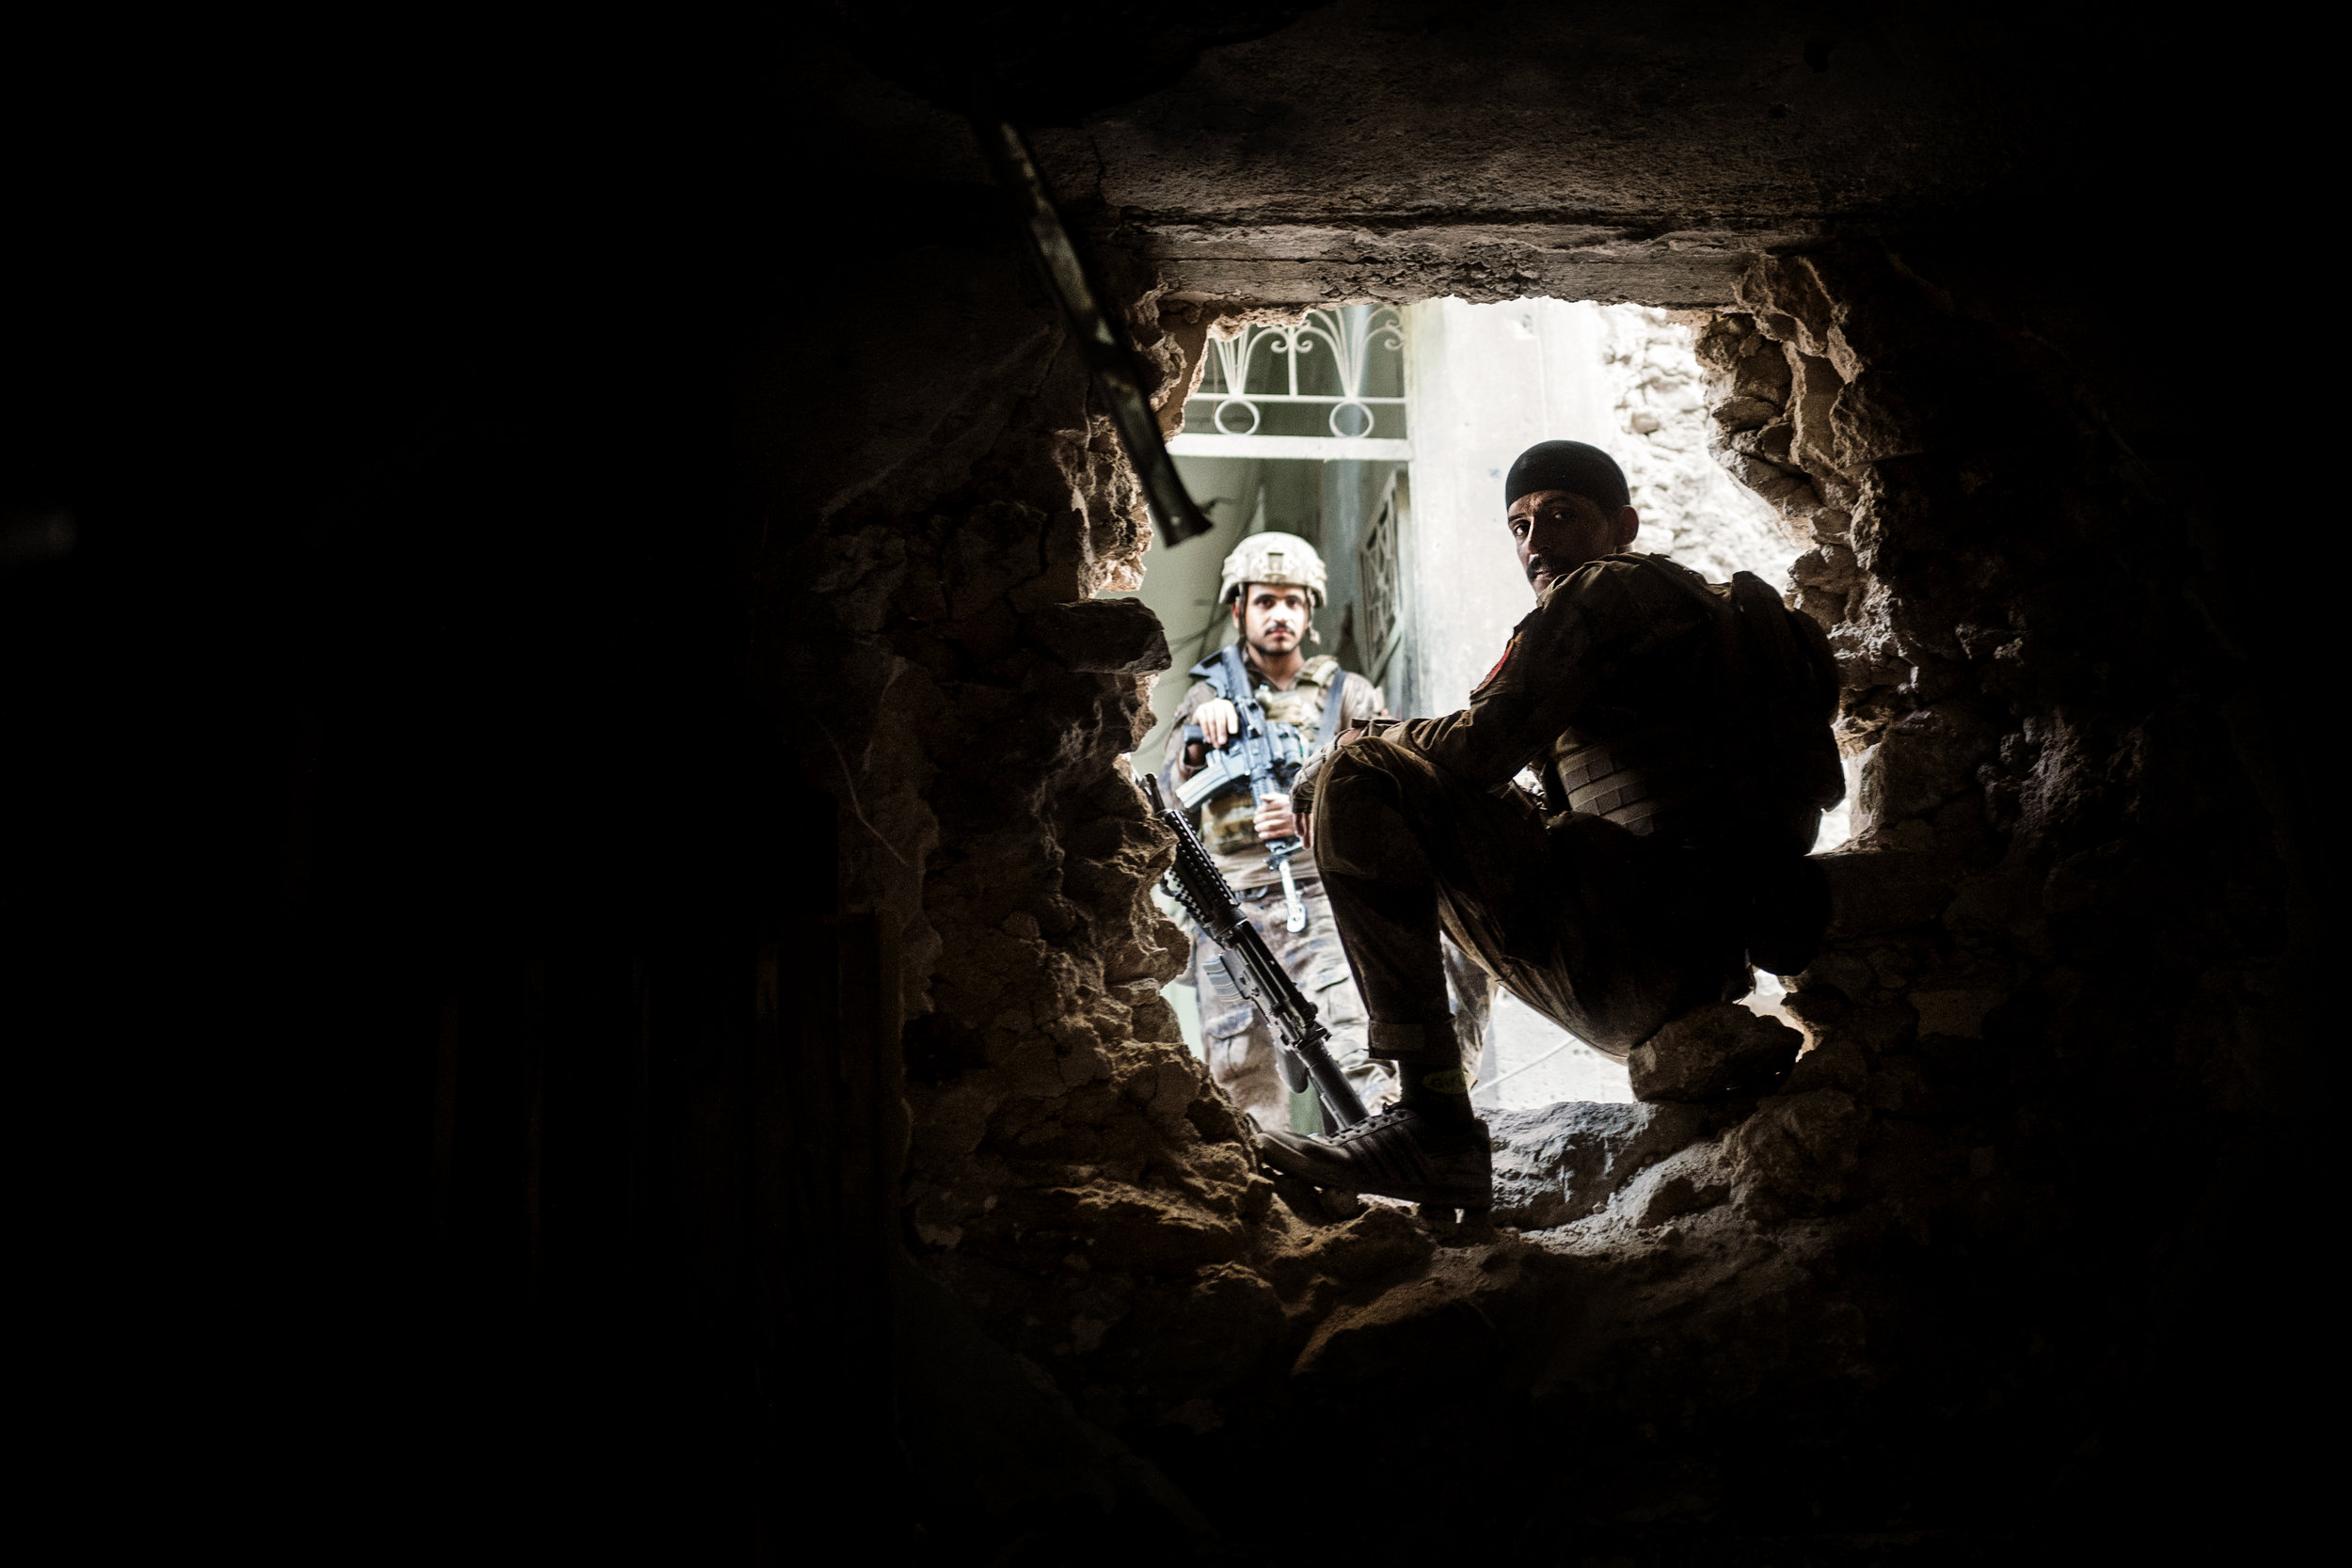 Iraqi Golden Division soldiers resting at the frontlines while waiting for a new chance to engage the ISIS fighters.